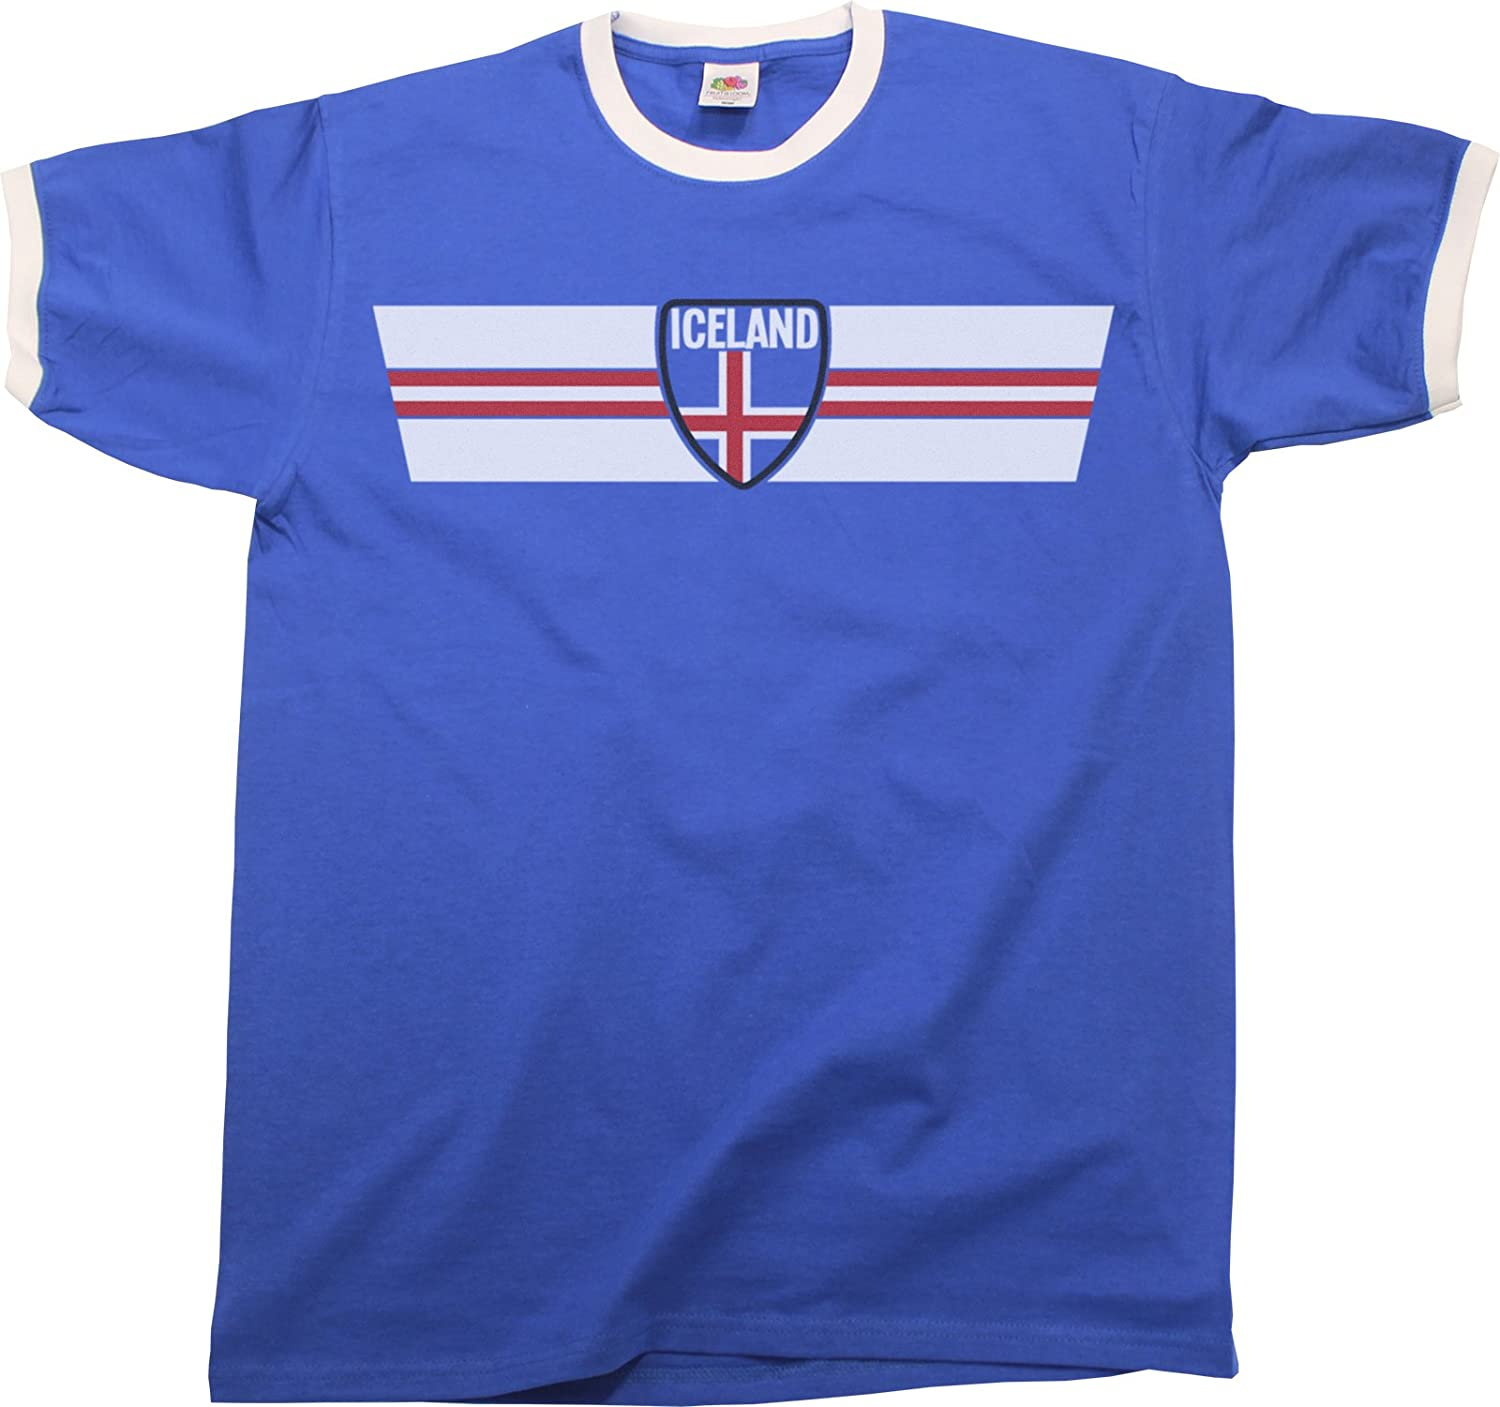 5c754b3964e Mens World Cup 2018 T-Shirt Iceland Retro Strip Patriotic Ringer Football  Top: Amazon.co.uk: Clothing